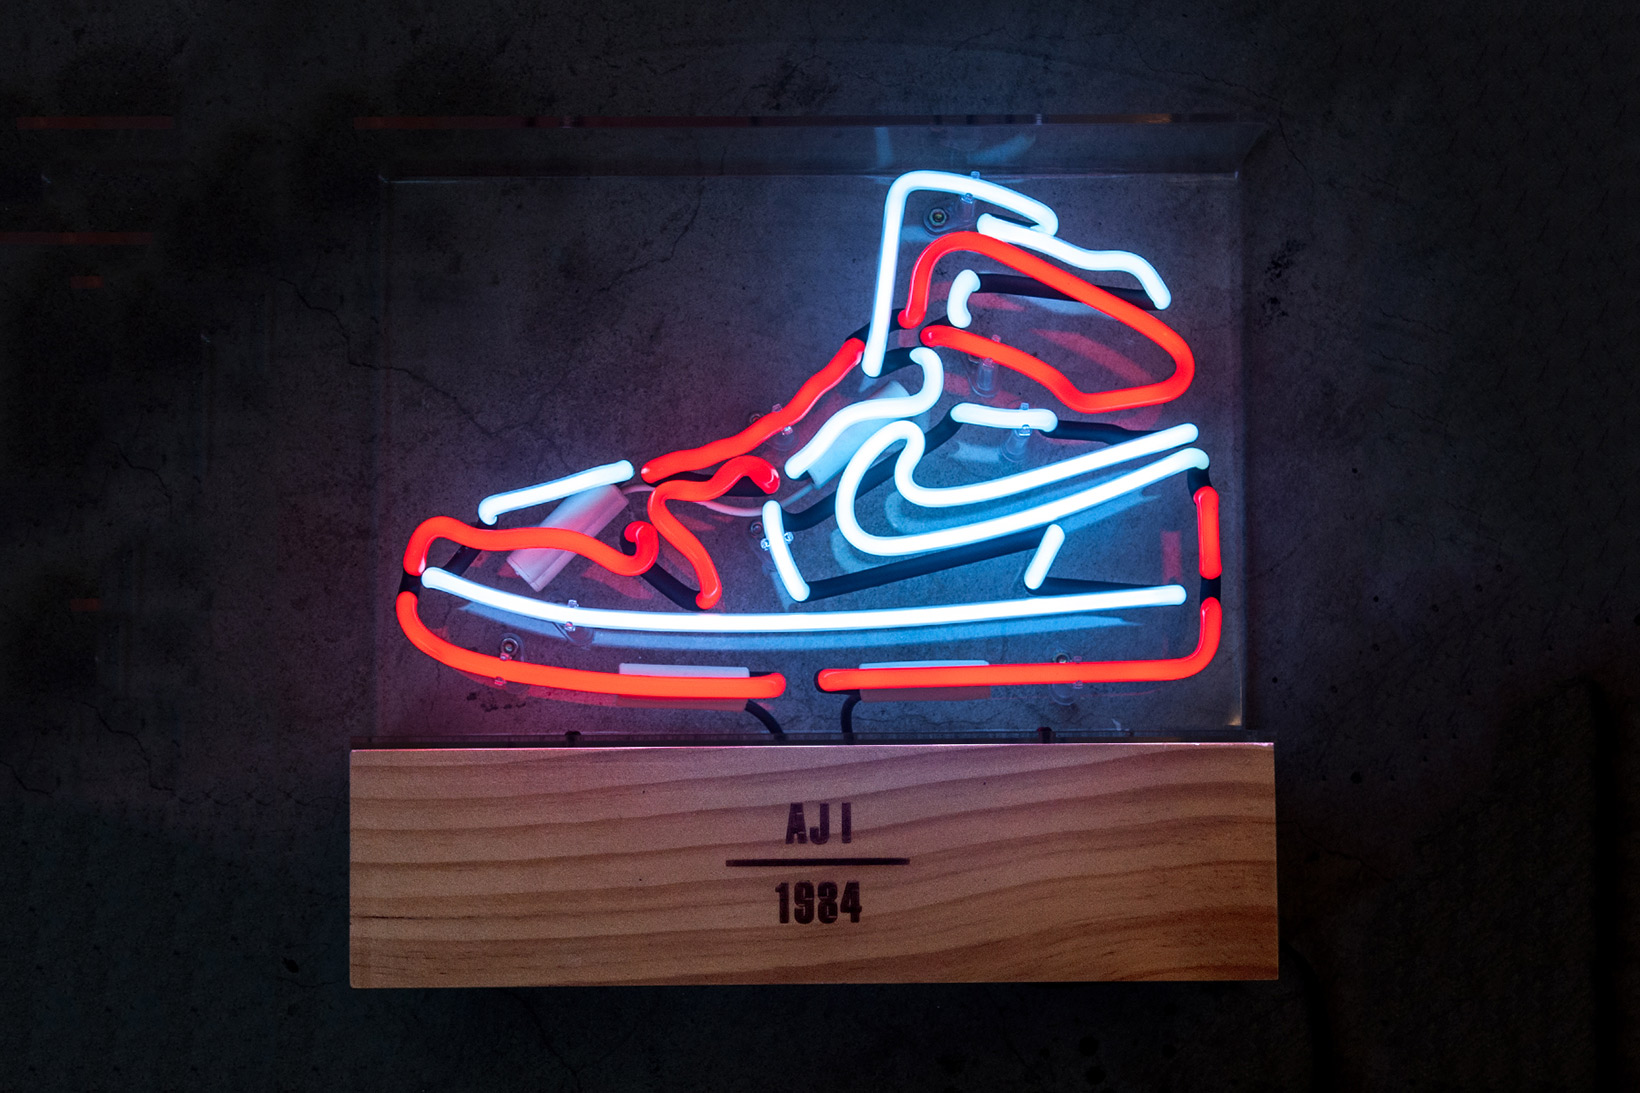 The Air Jordan 1 Silhouette Is Next to Get the Neon Light Treatment